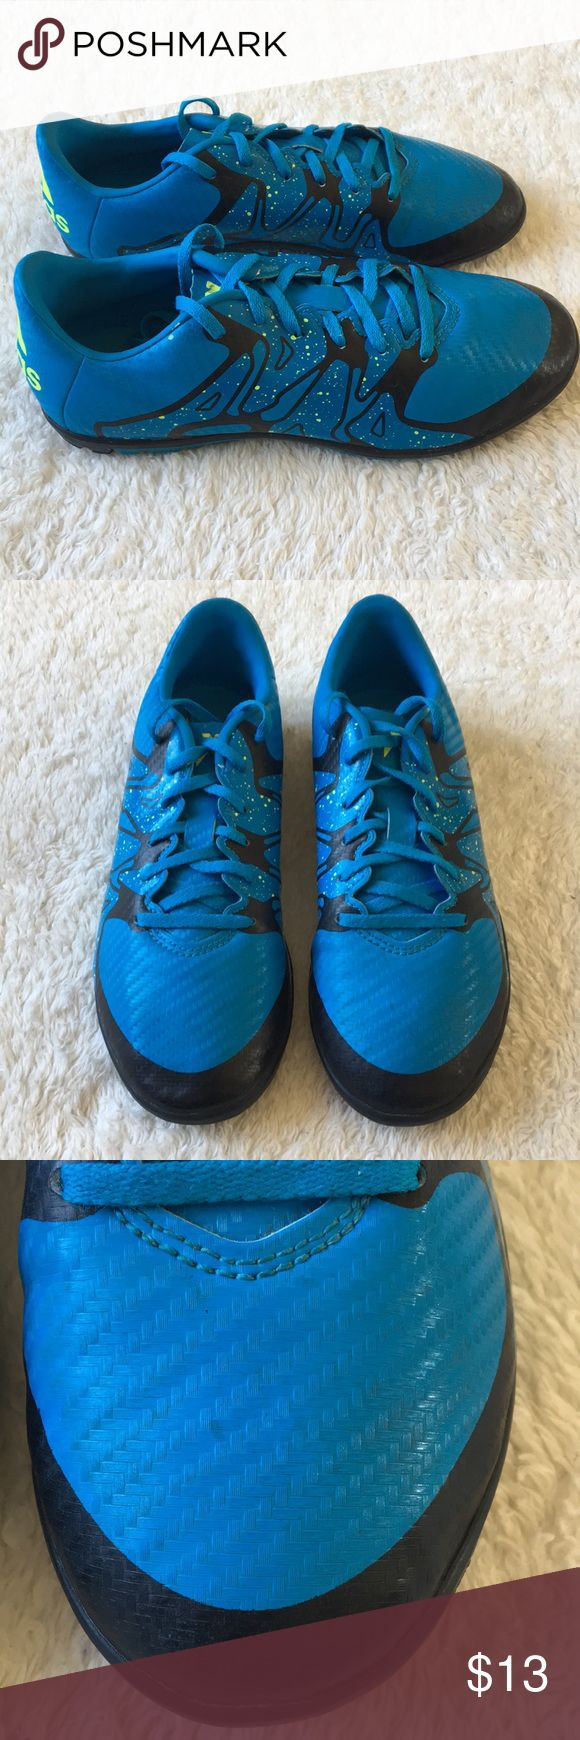 Youth Adidas X 15.3 Soccer Turf Cleats 3.5 Preowned  Youth size 3.5 Some wear marks on the toe area Lots of life left adidas Shoes